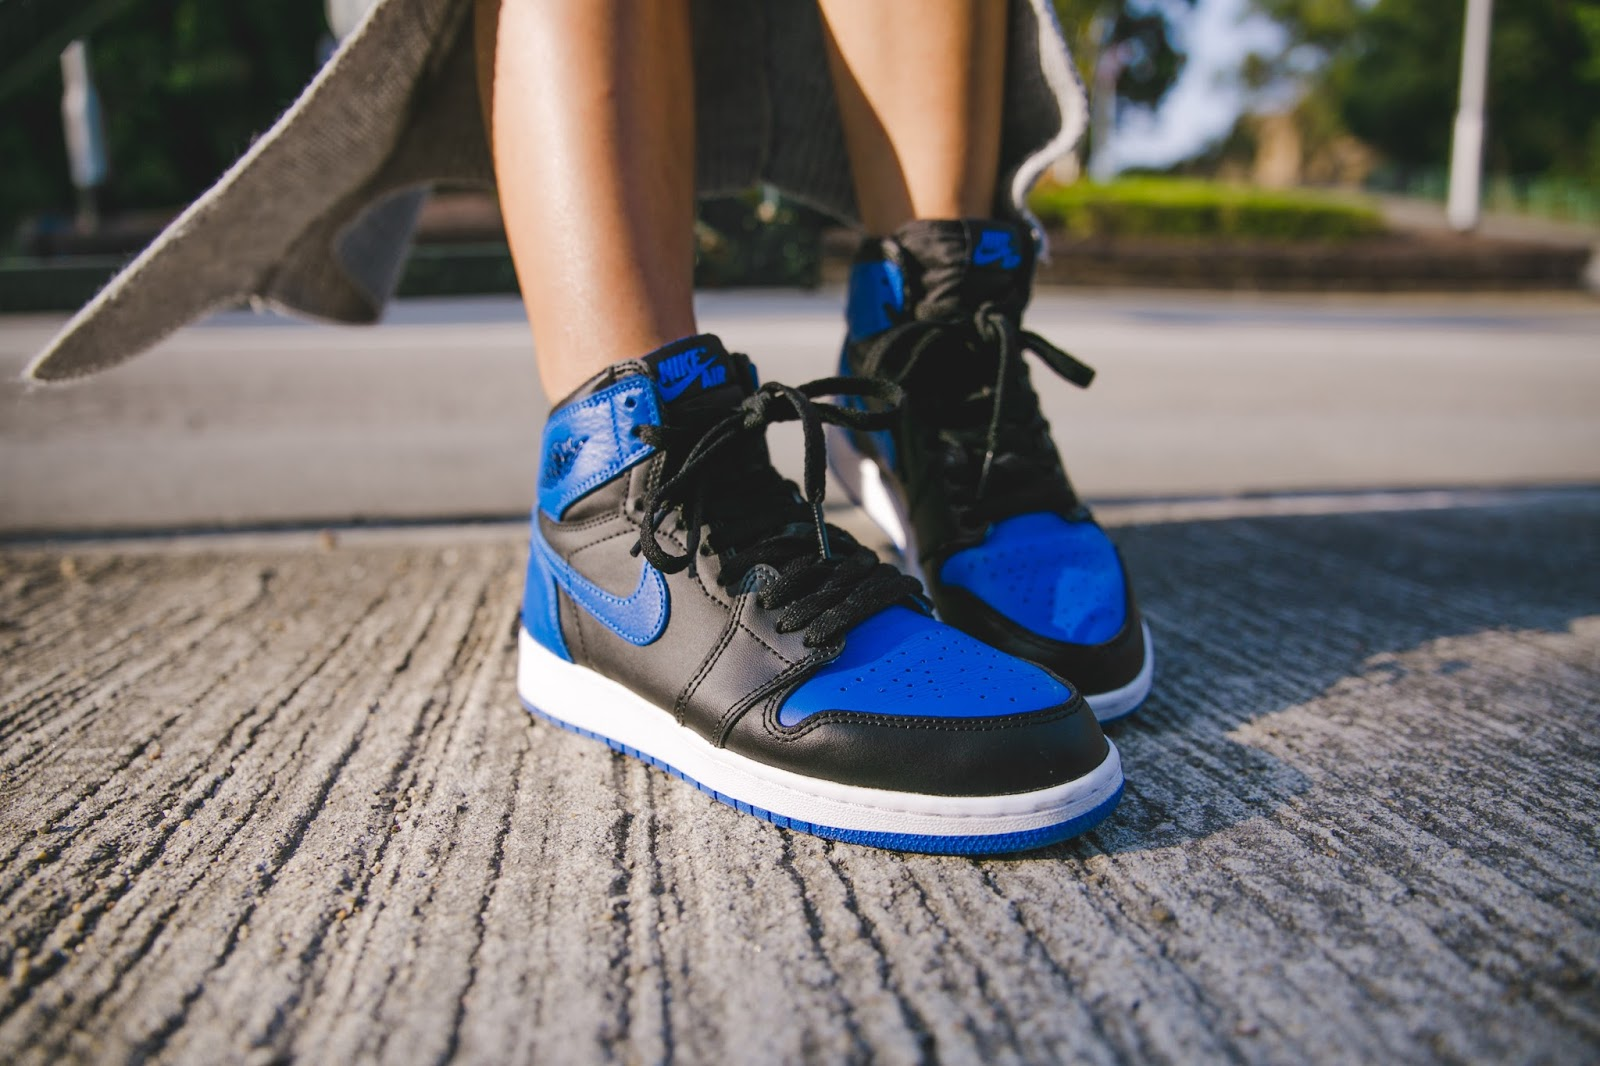 macau fashion blogger wearing air jordan royal blue